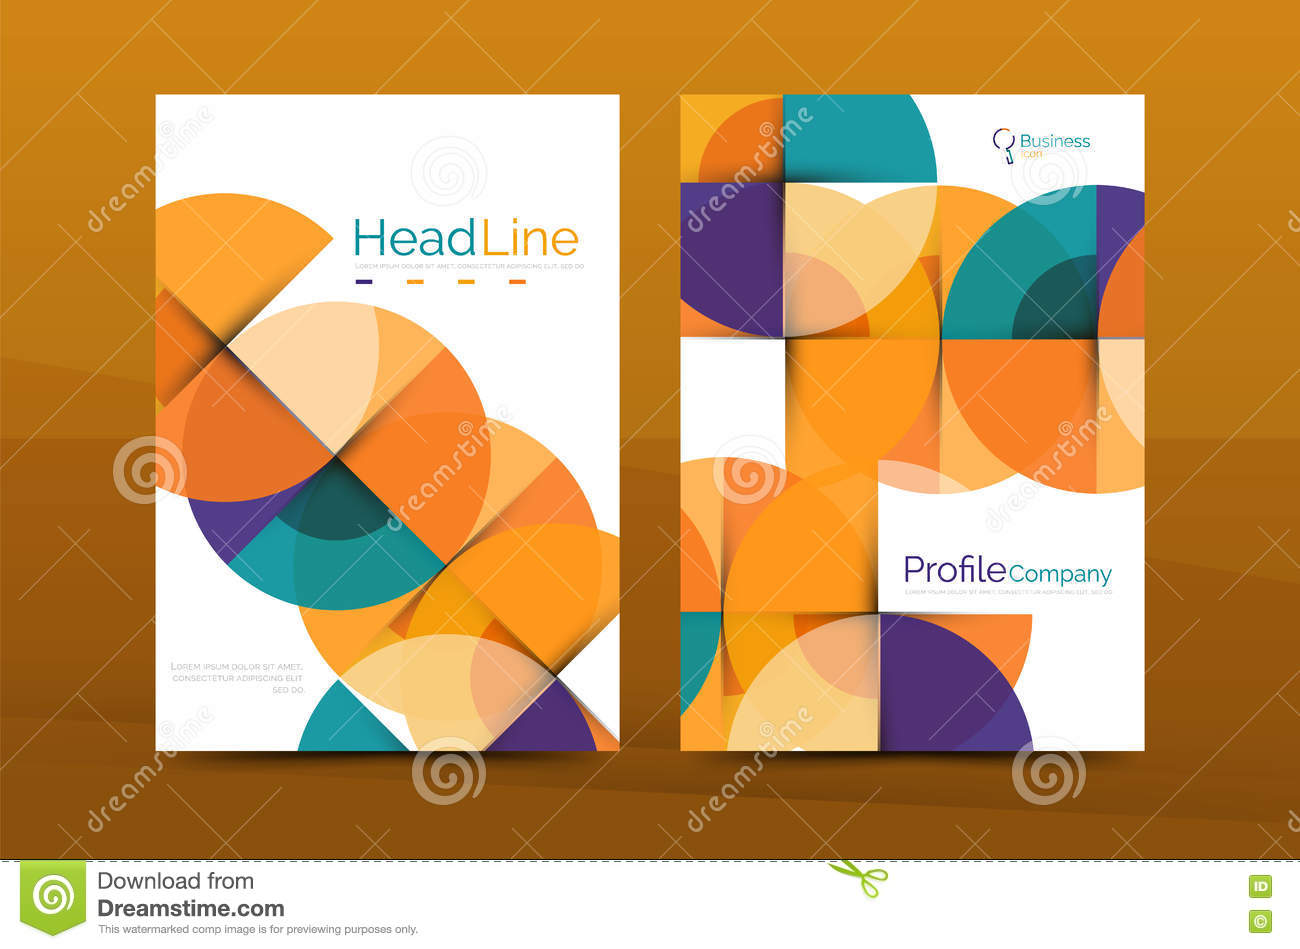 Business company profile brochure template vector for Company profile brochure template